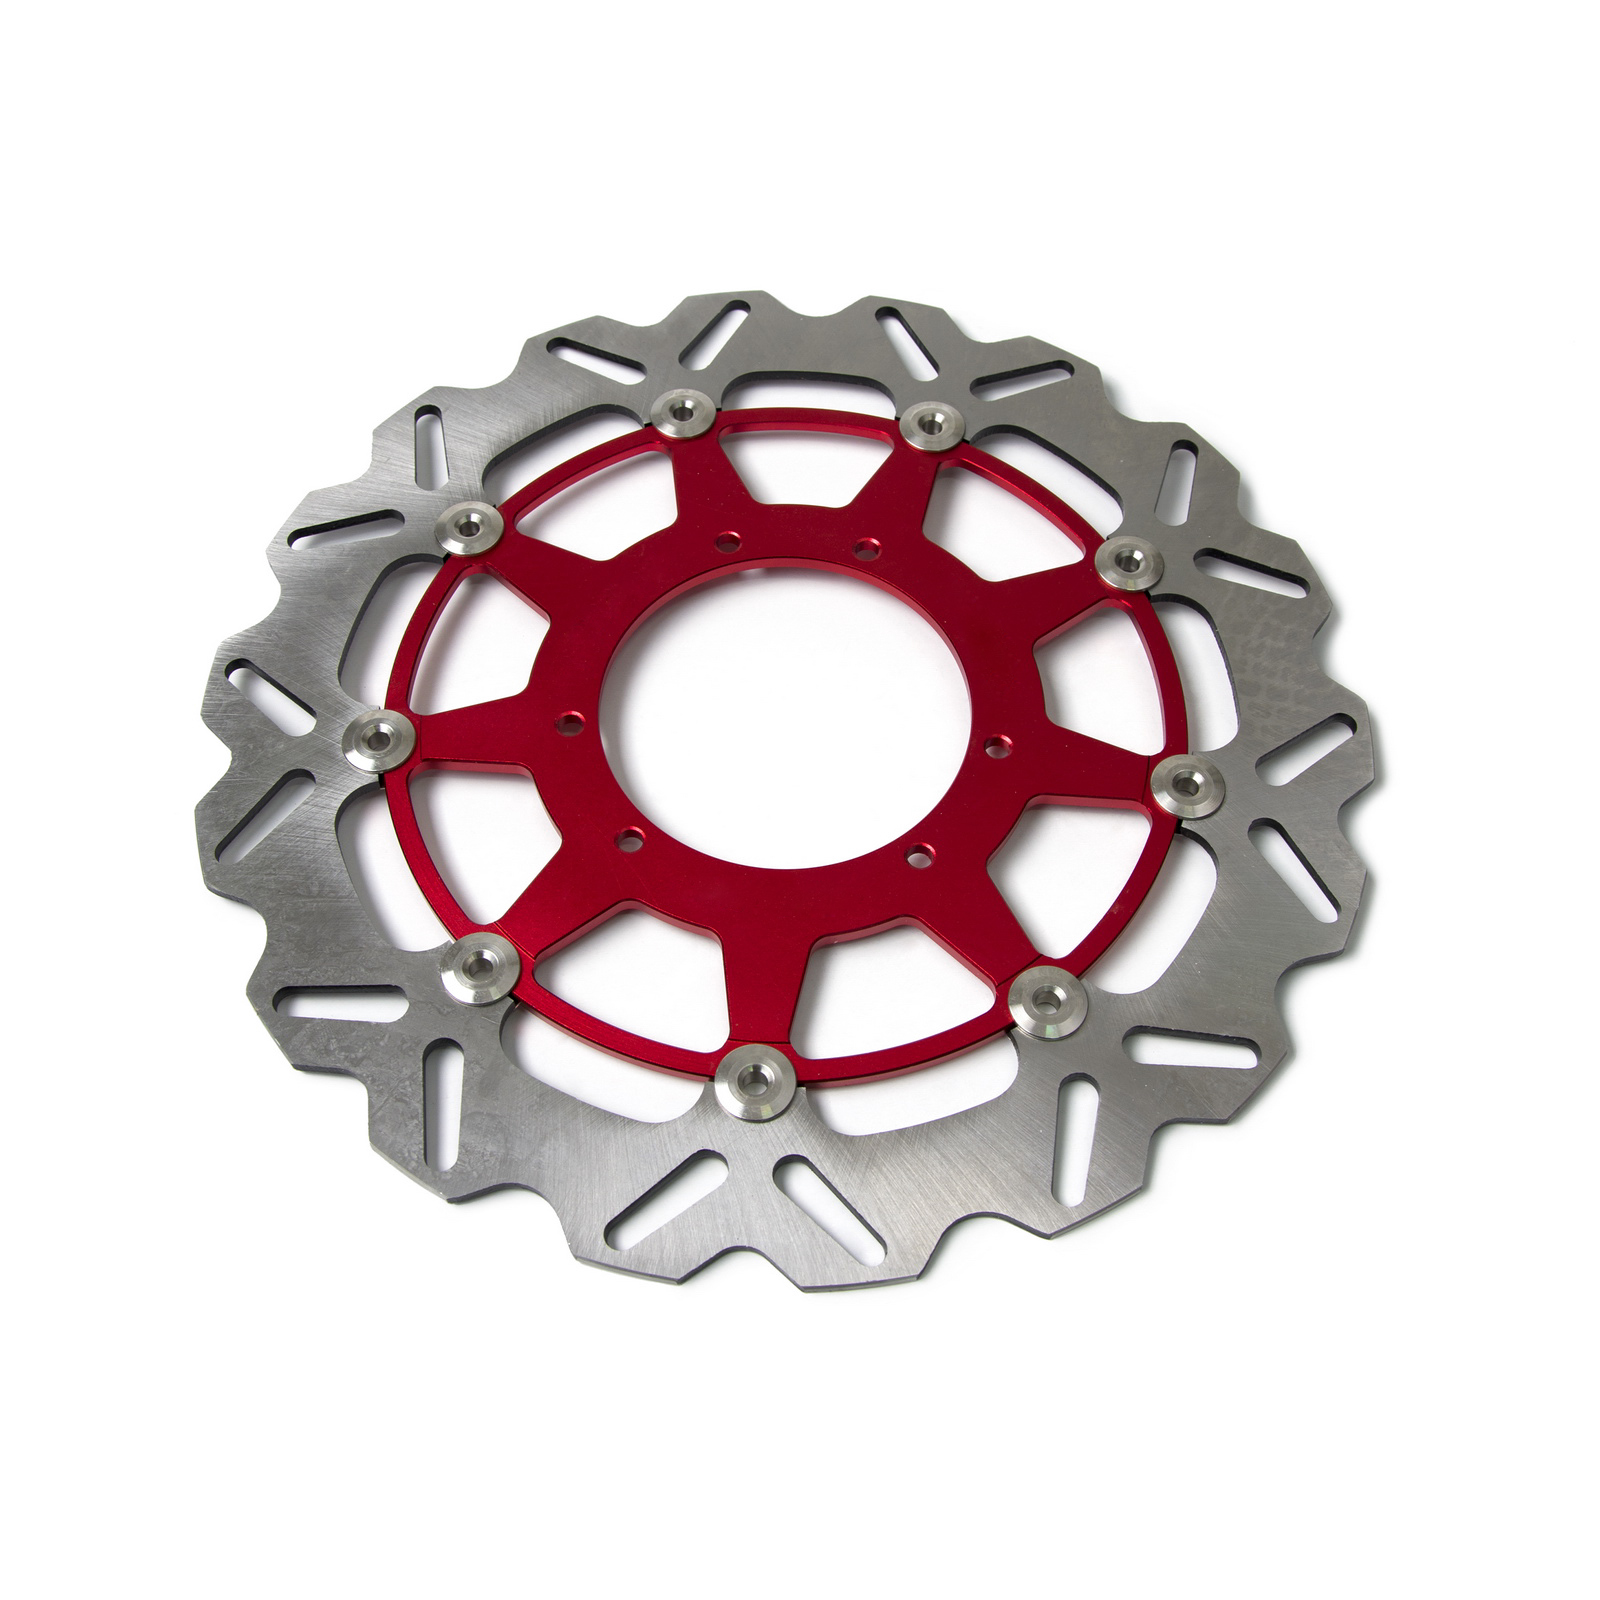 New 270mm Front Floating Brake Disc Rotor for HONDA CRF450X CR125R CR250R CRF230